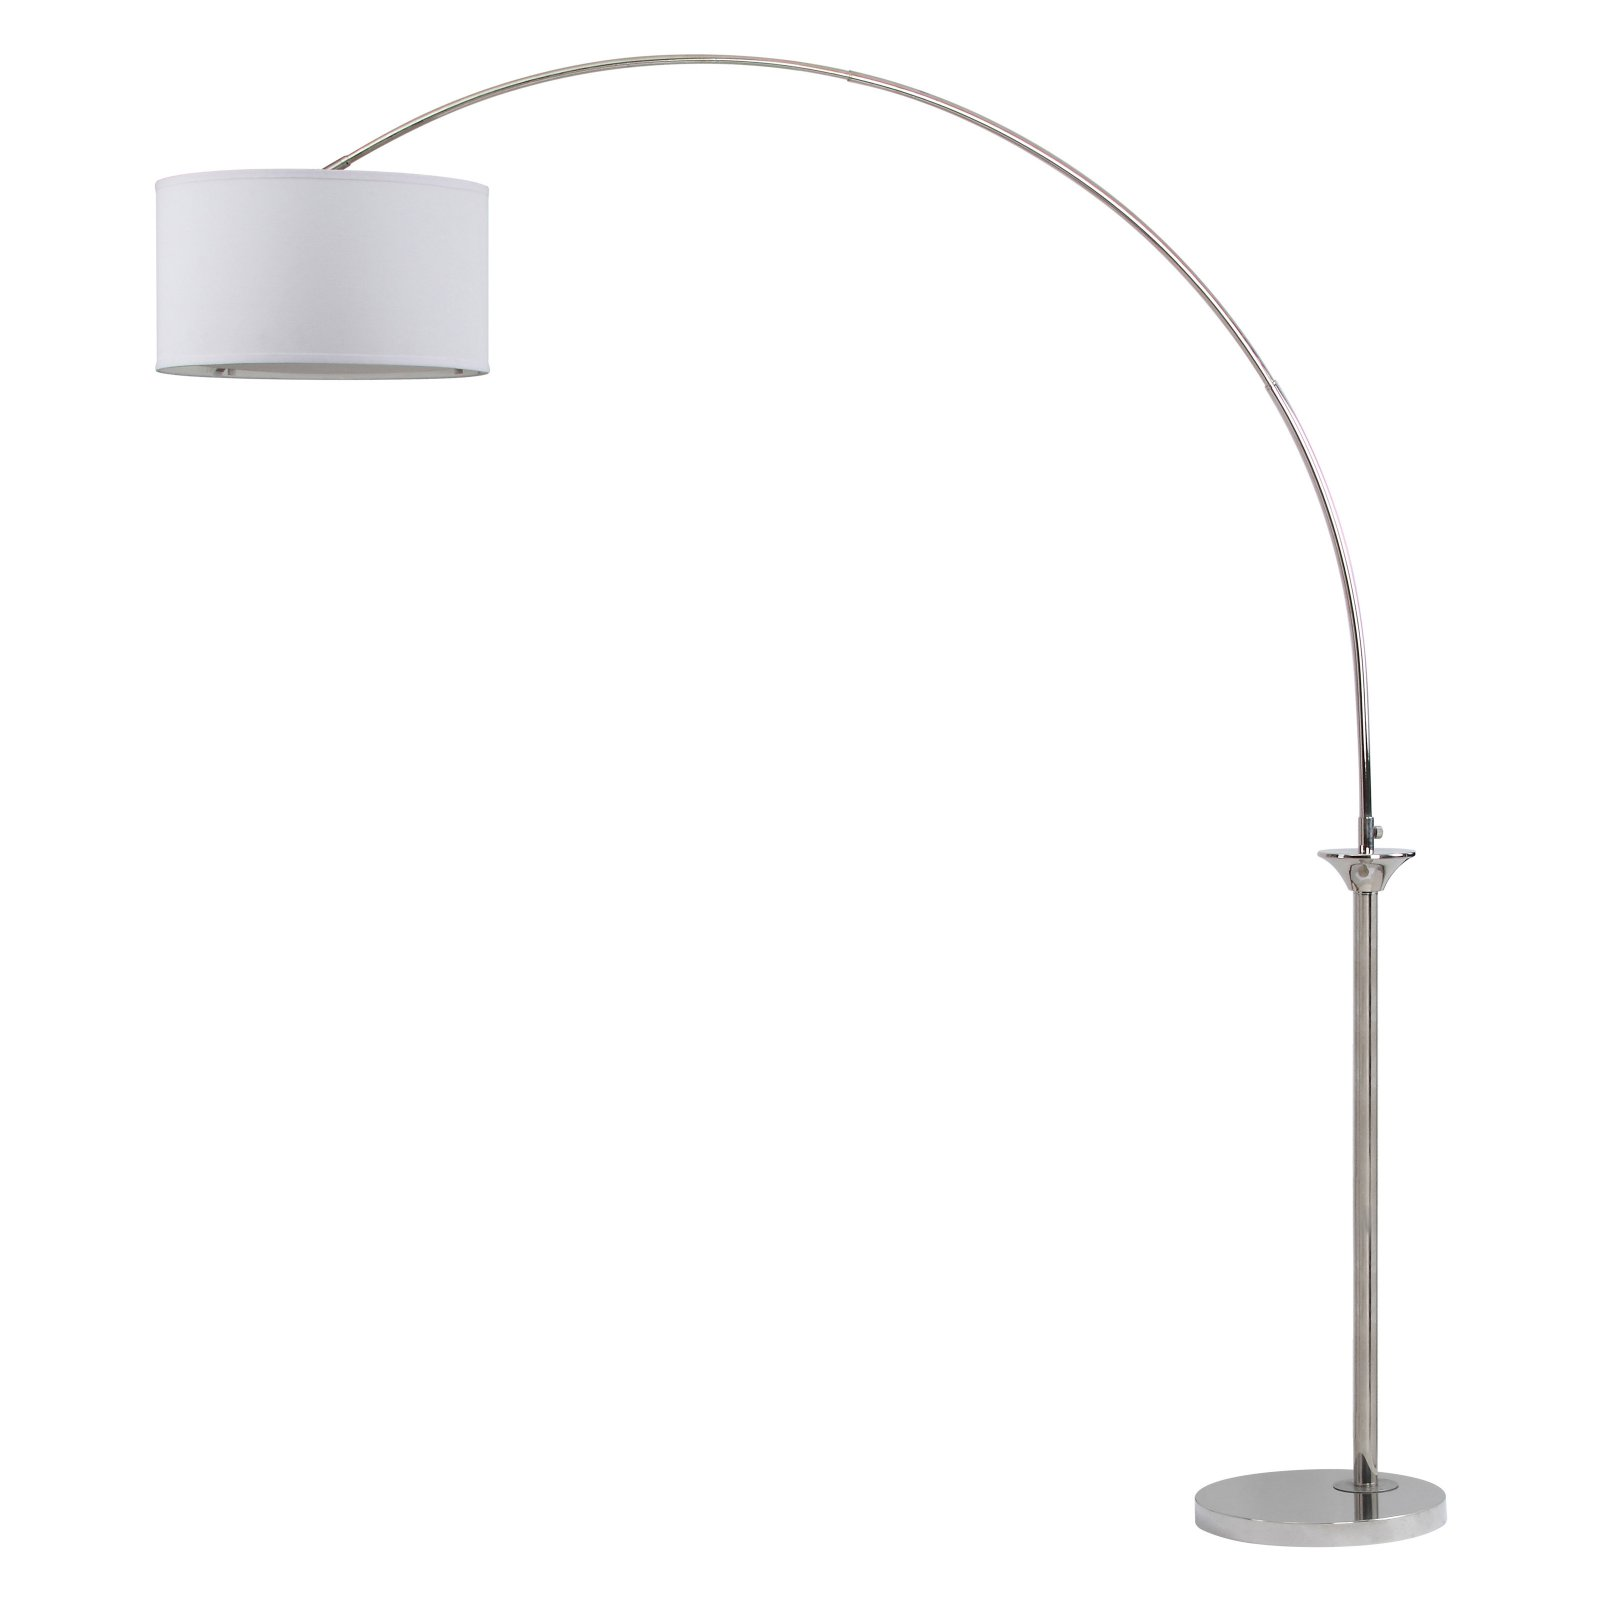 Safavieh Mira Arc Floor Lamp With CFL Bulb, Shine Nickel With Off White  Shade